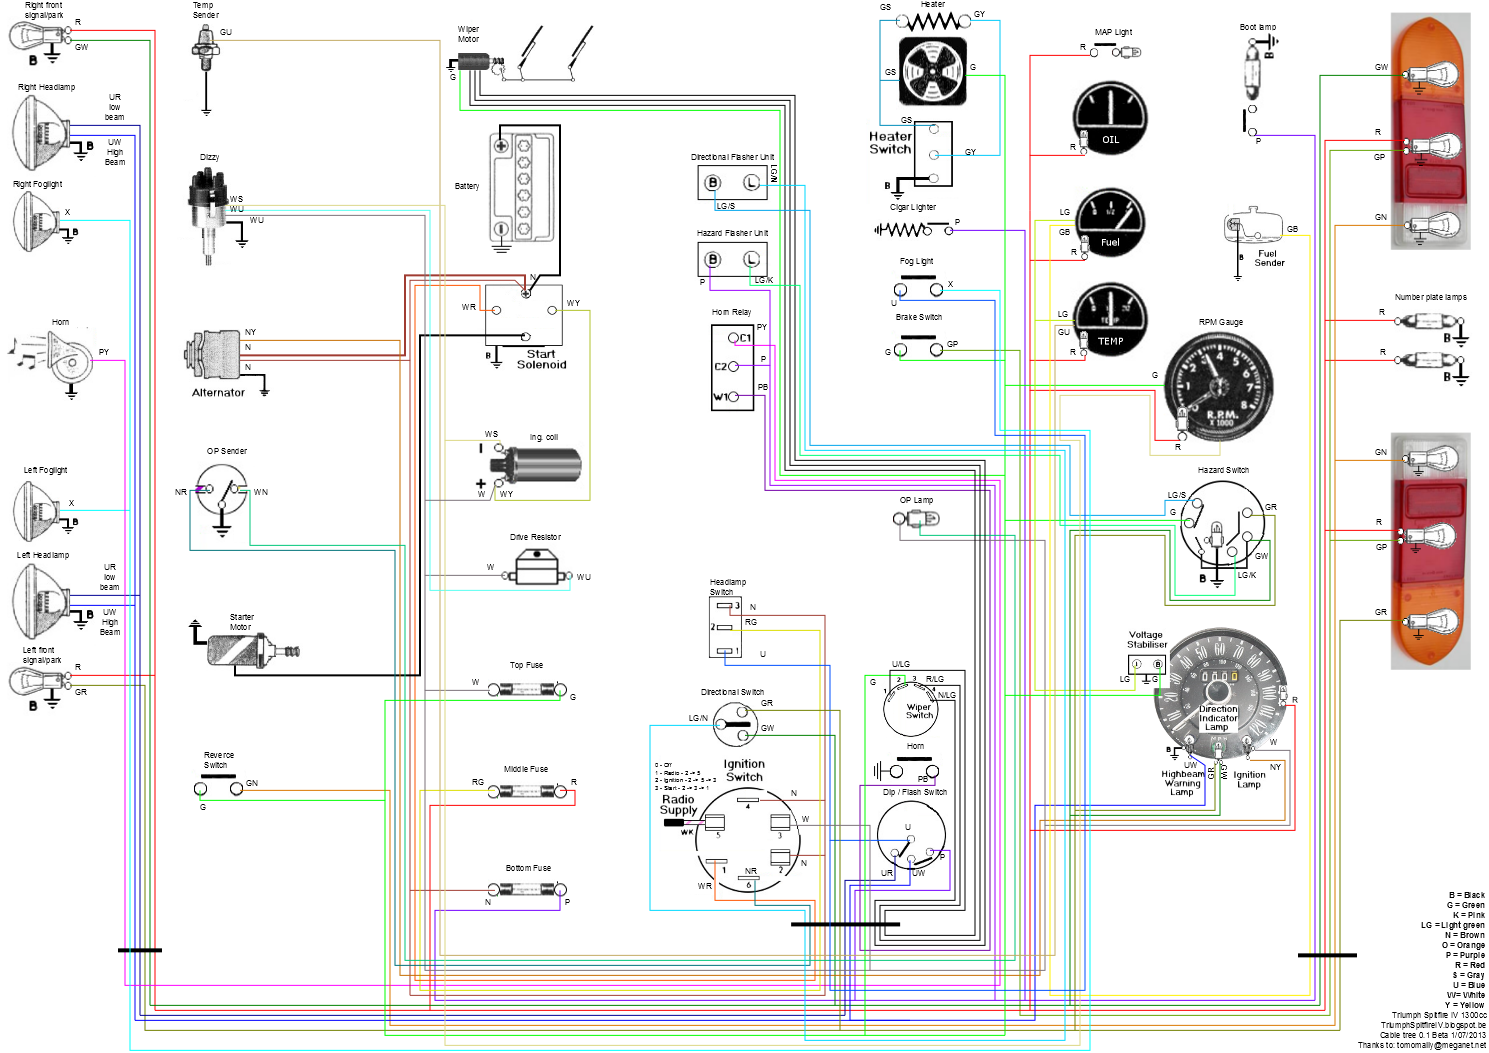 spitfire iv wiring diagram mk4 wiring diagram mk4 tdi wiring diagram \u2022 wiring diagrams j  at webbmarketing.co